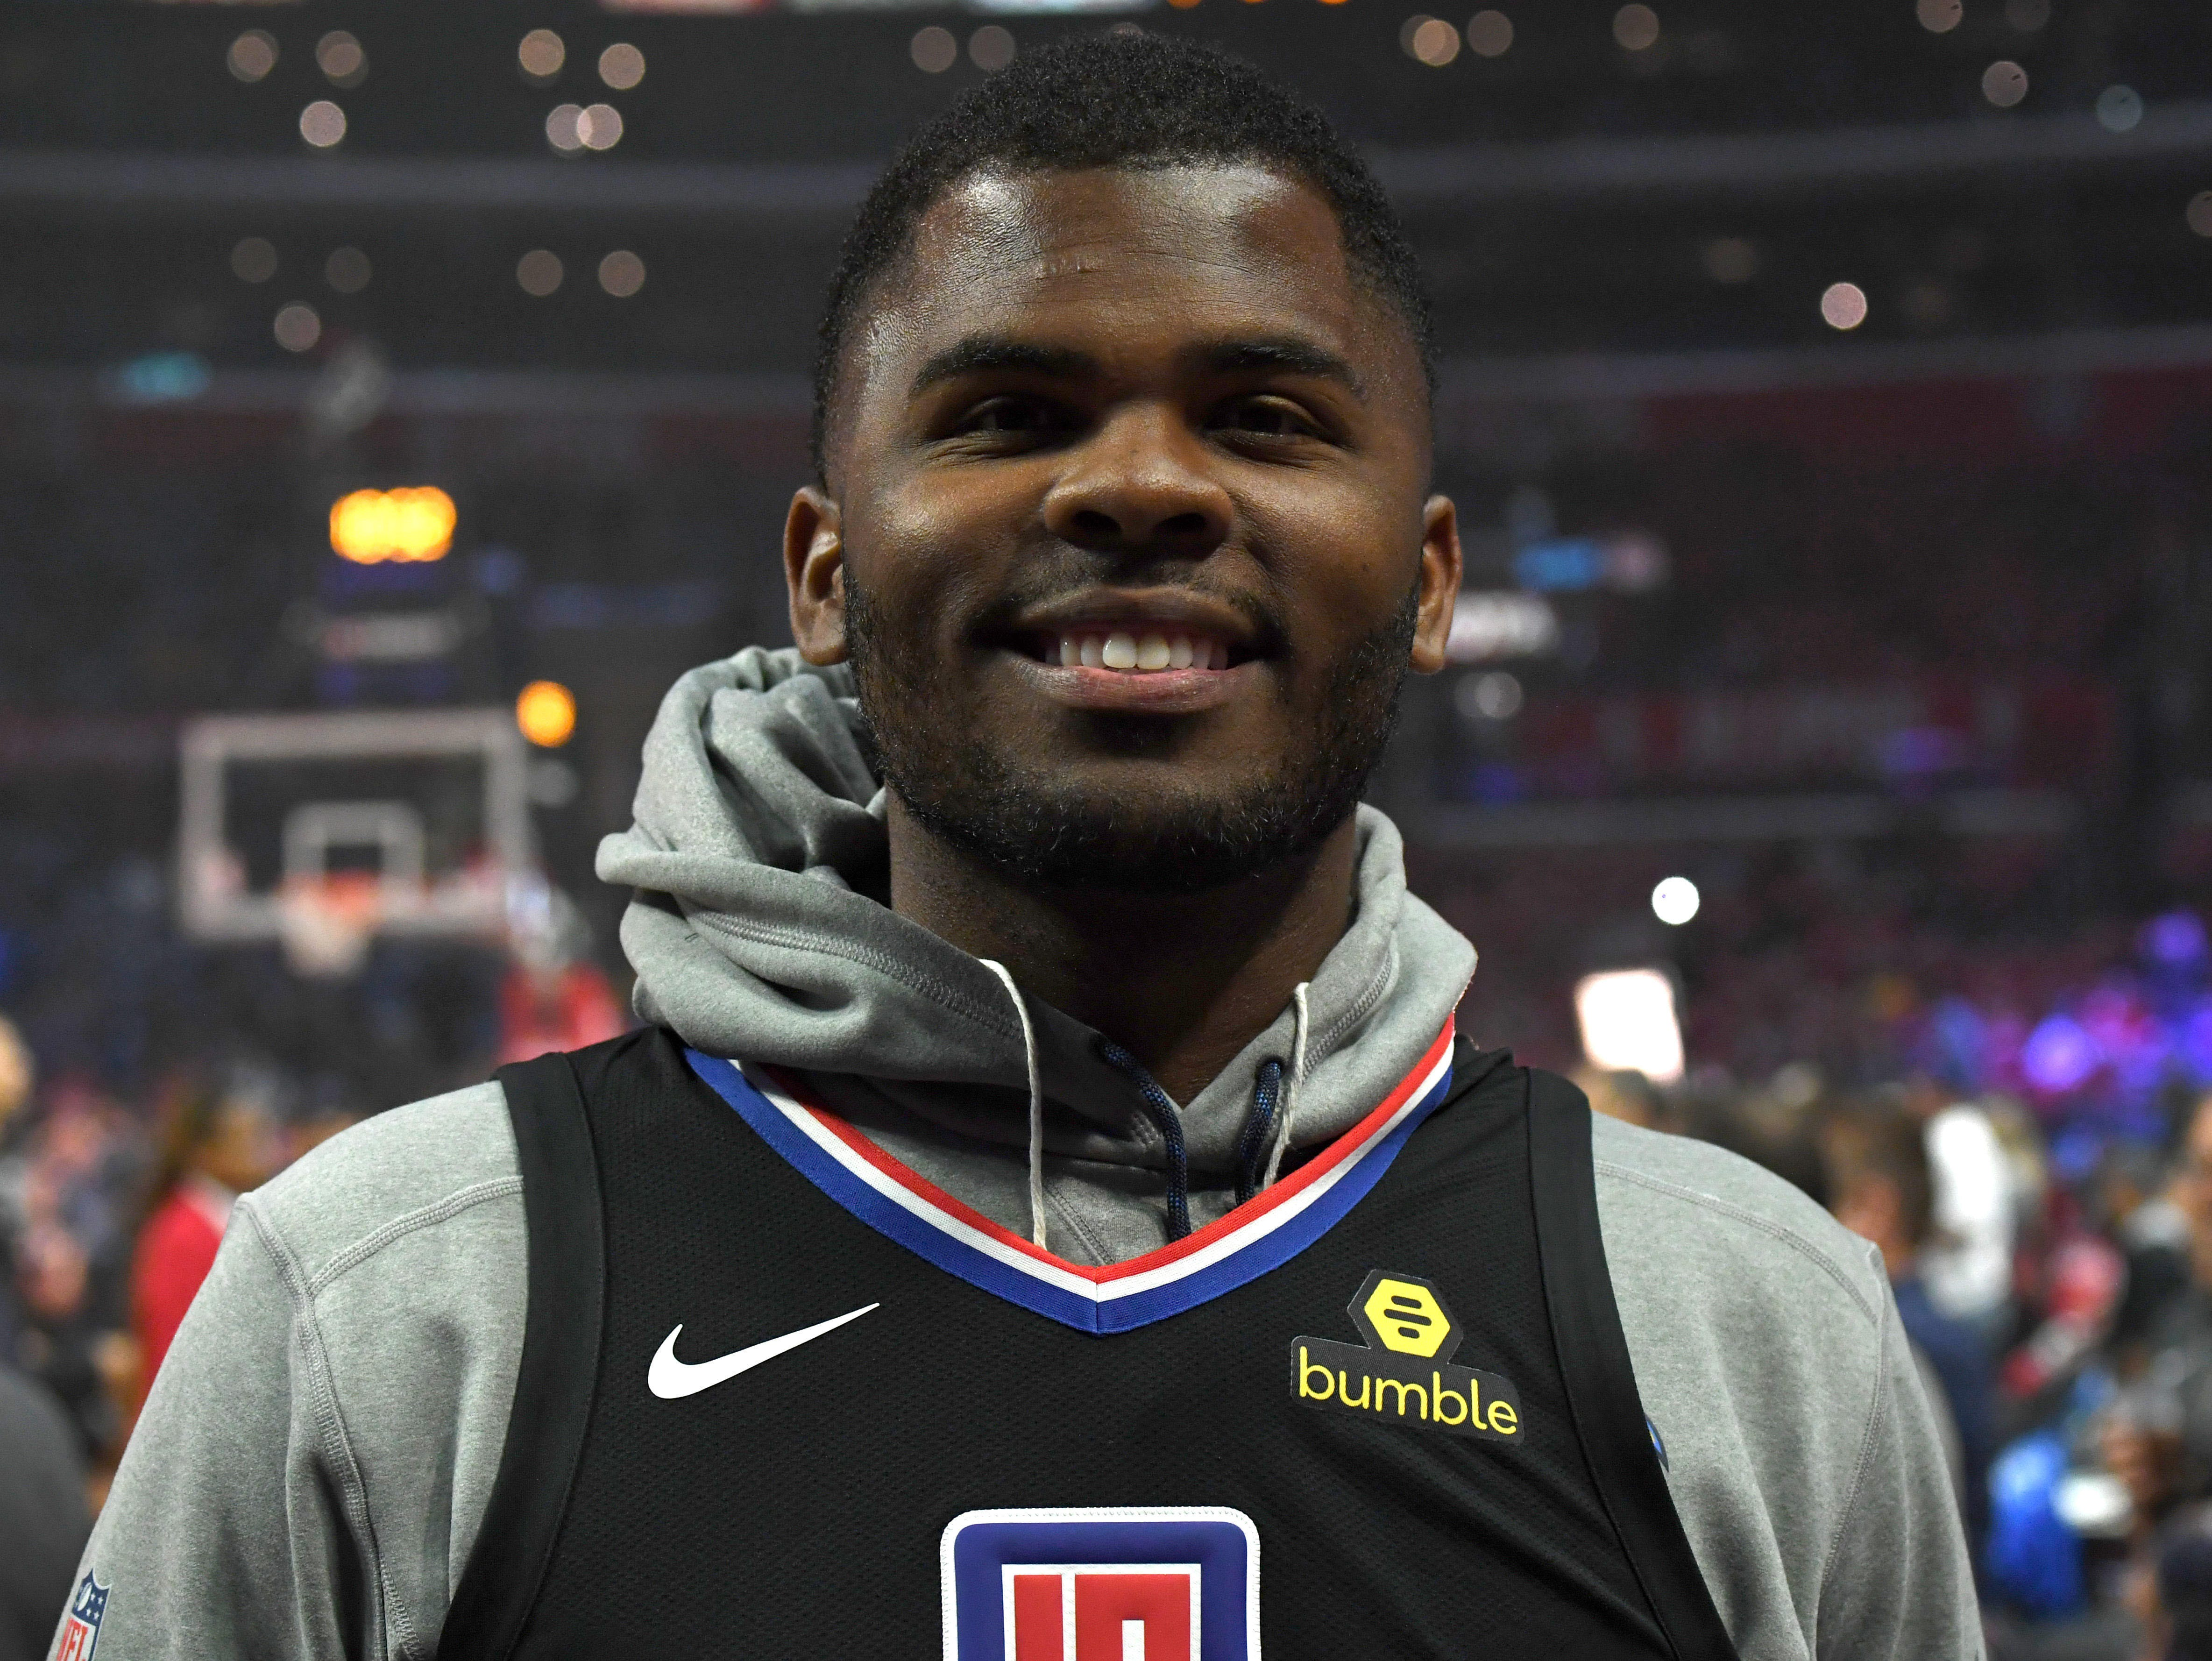 April 26: Jerry Tillery, drafted 28th overall by the Los Angeles Chargers, attends Game 6 between the Warriors and Clippers at Staples Center.